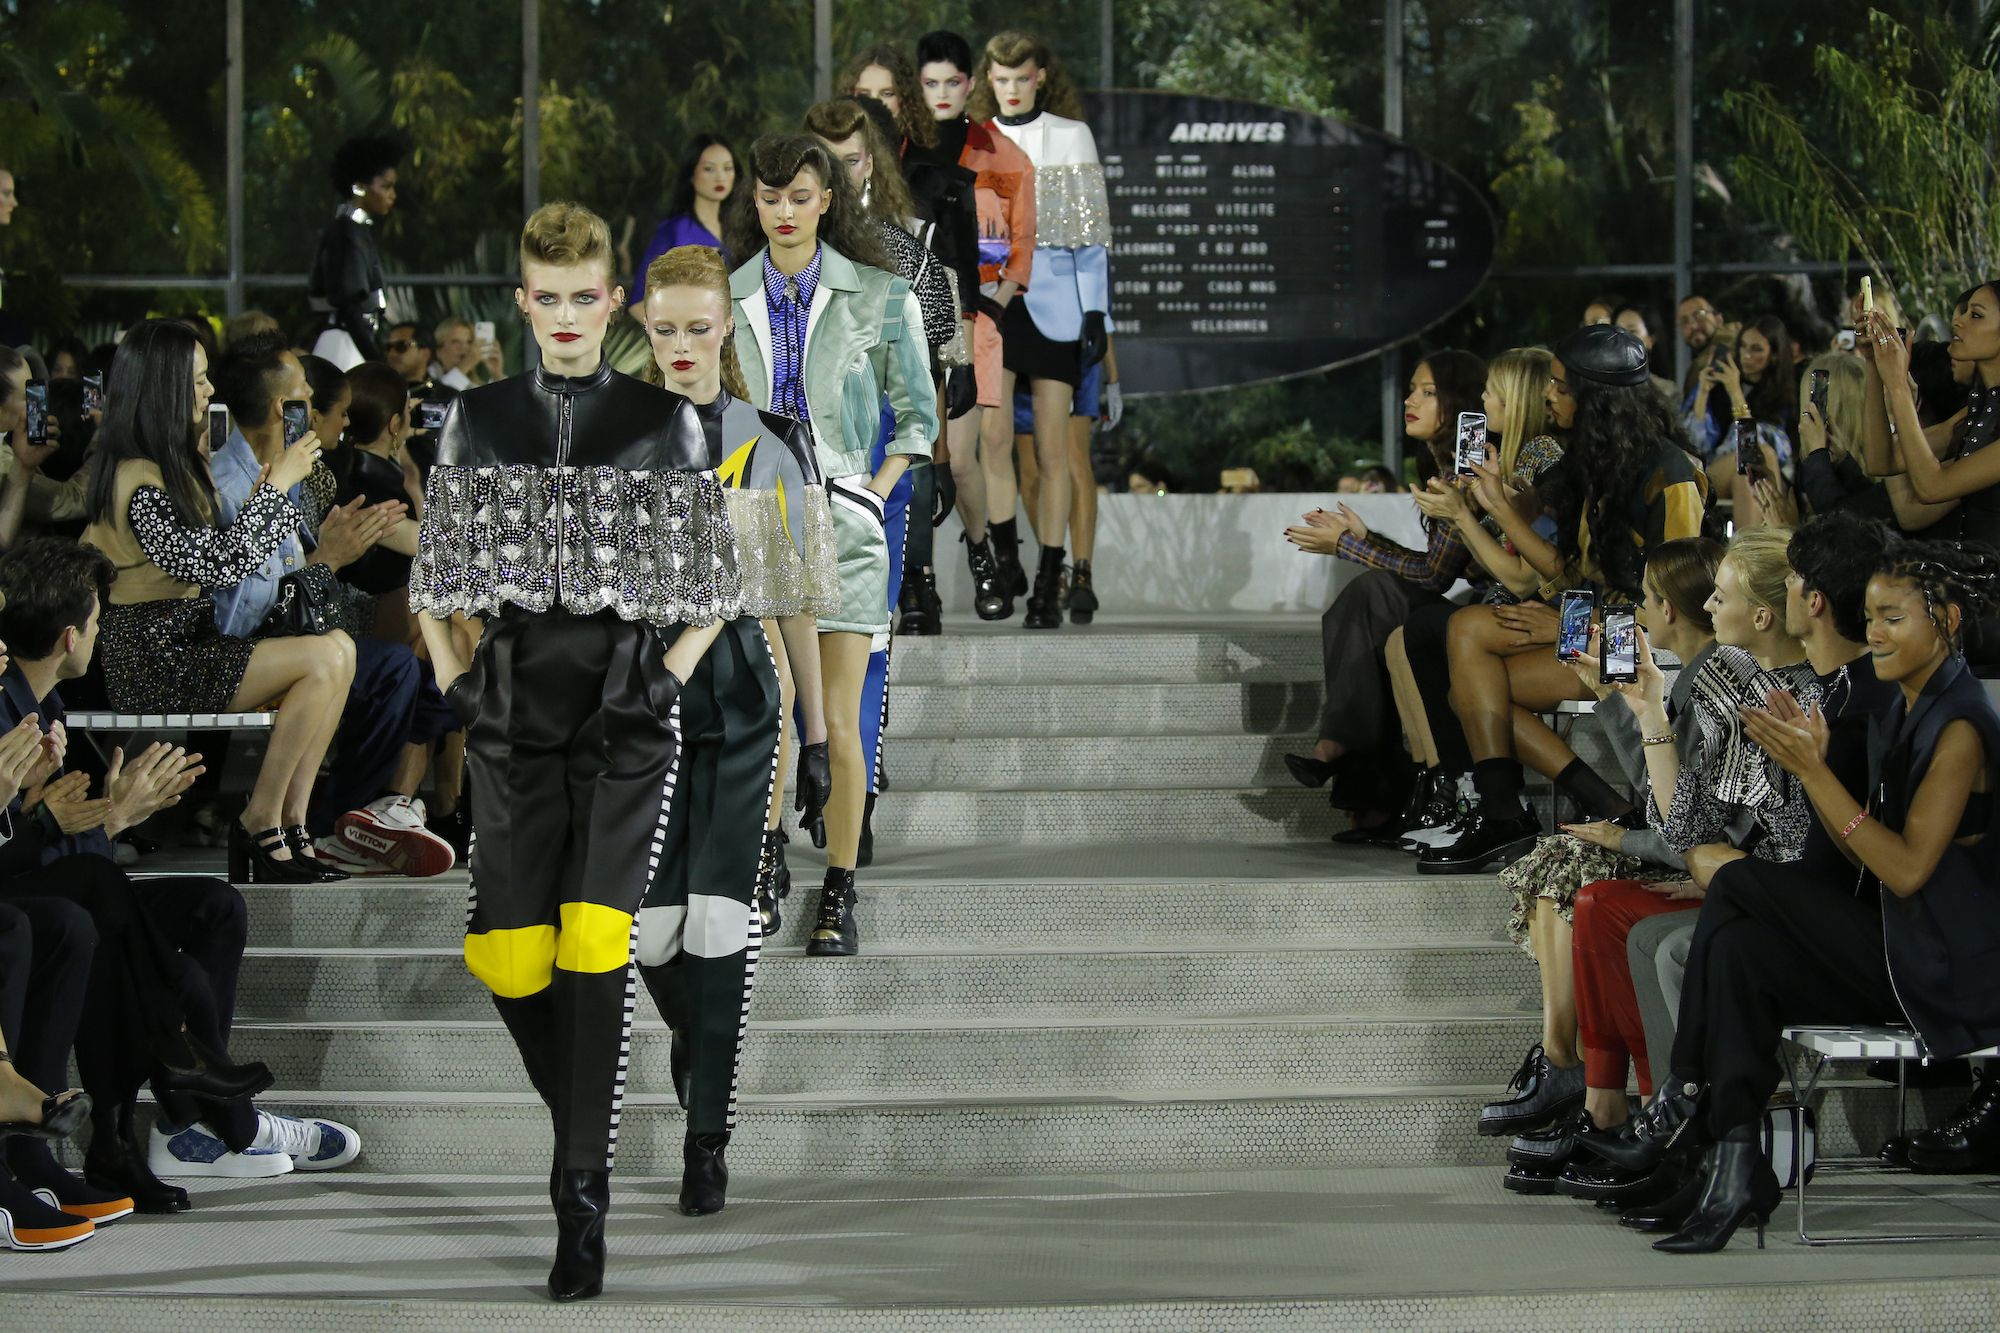 Louis Vuitton's Cruise 2020 Show Transports Guests to New Dimensions